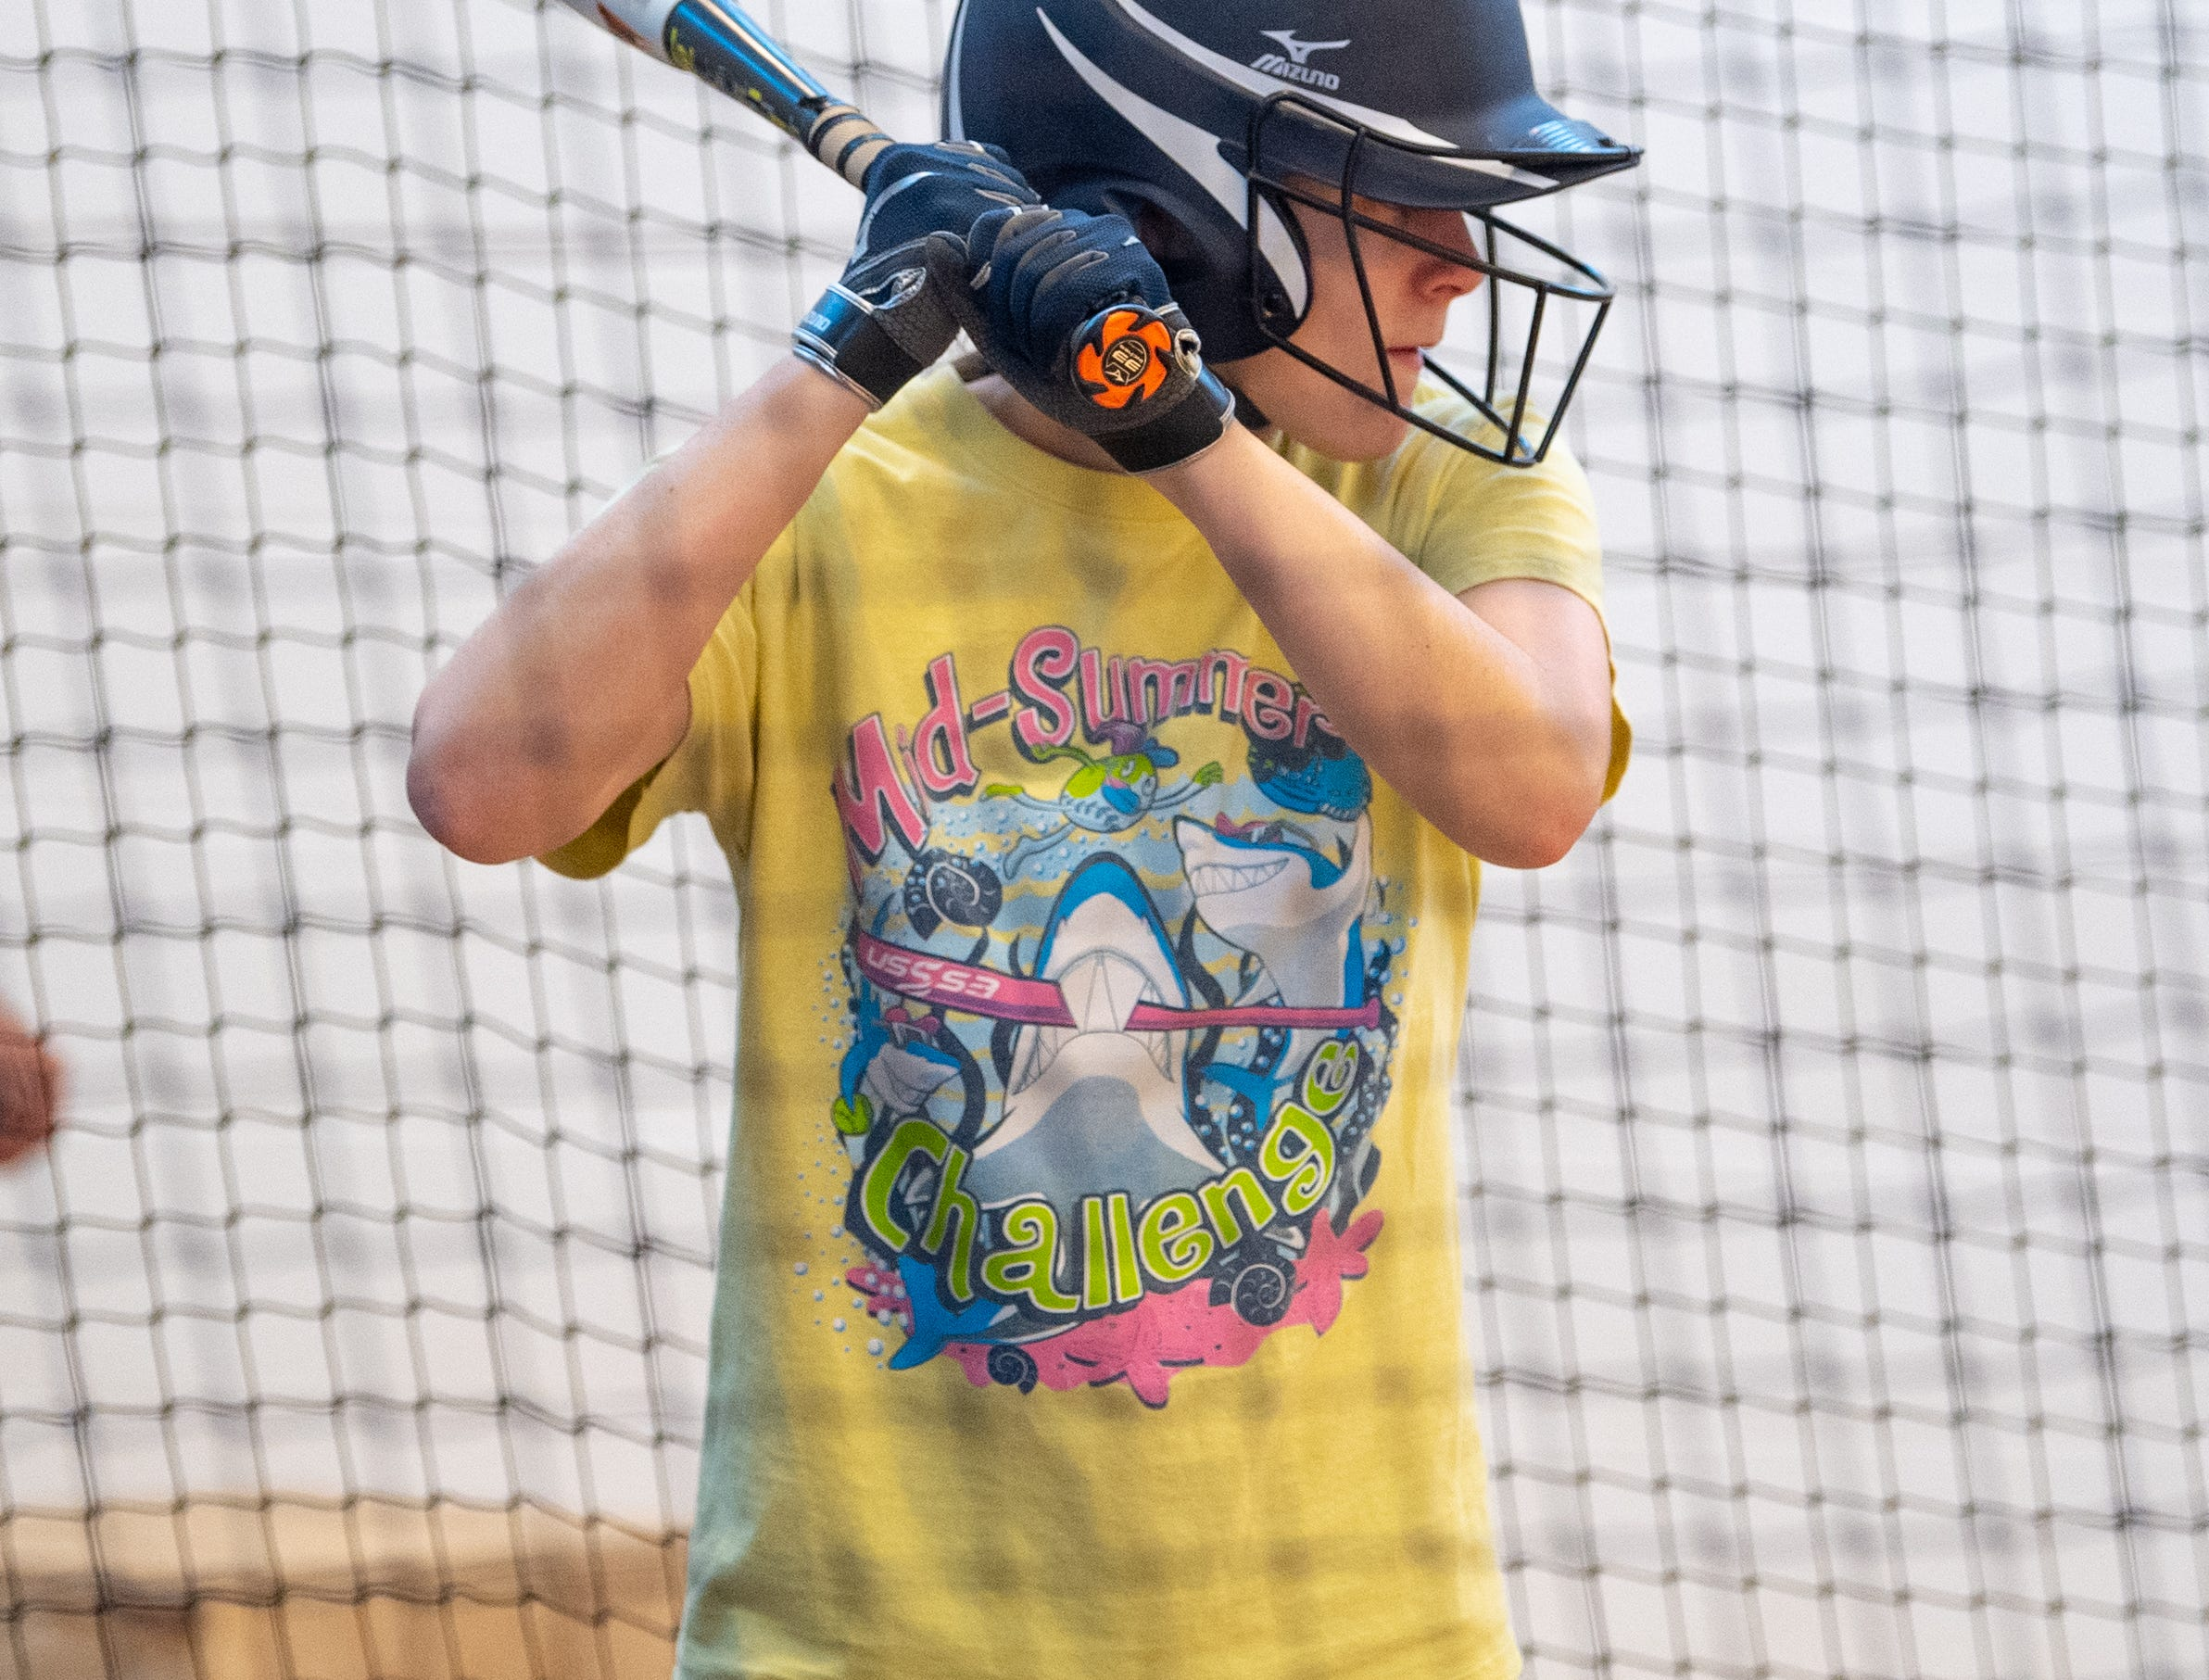 Players take turns batting during West York's softball practice, March 5, 2019.